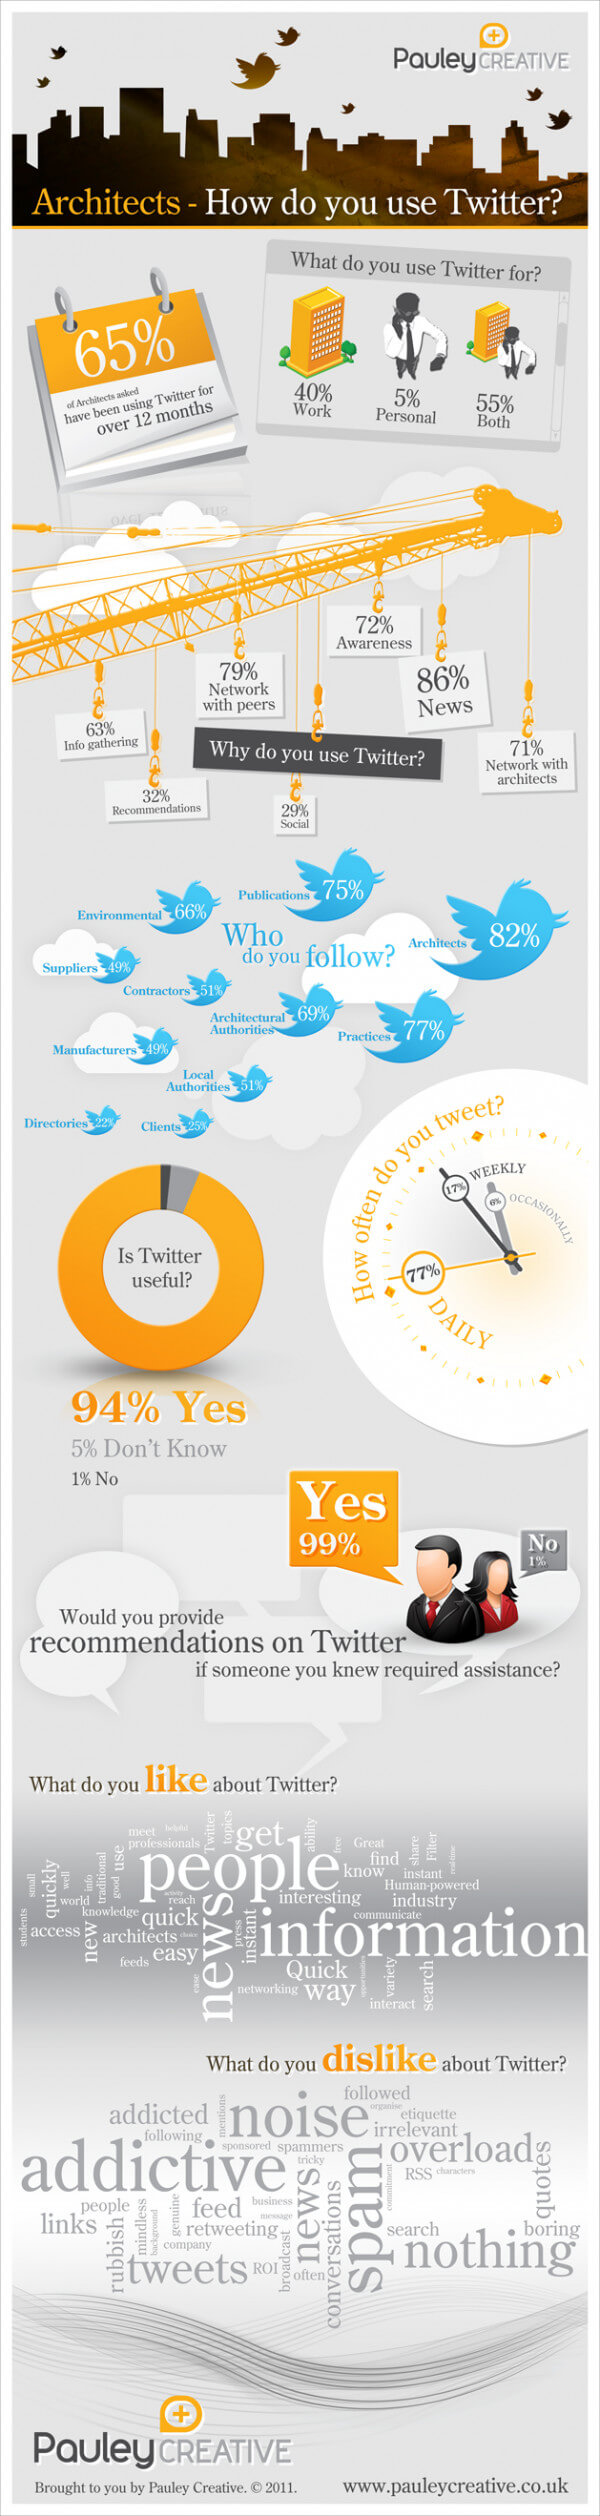 Architects: How do you use Twitter?